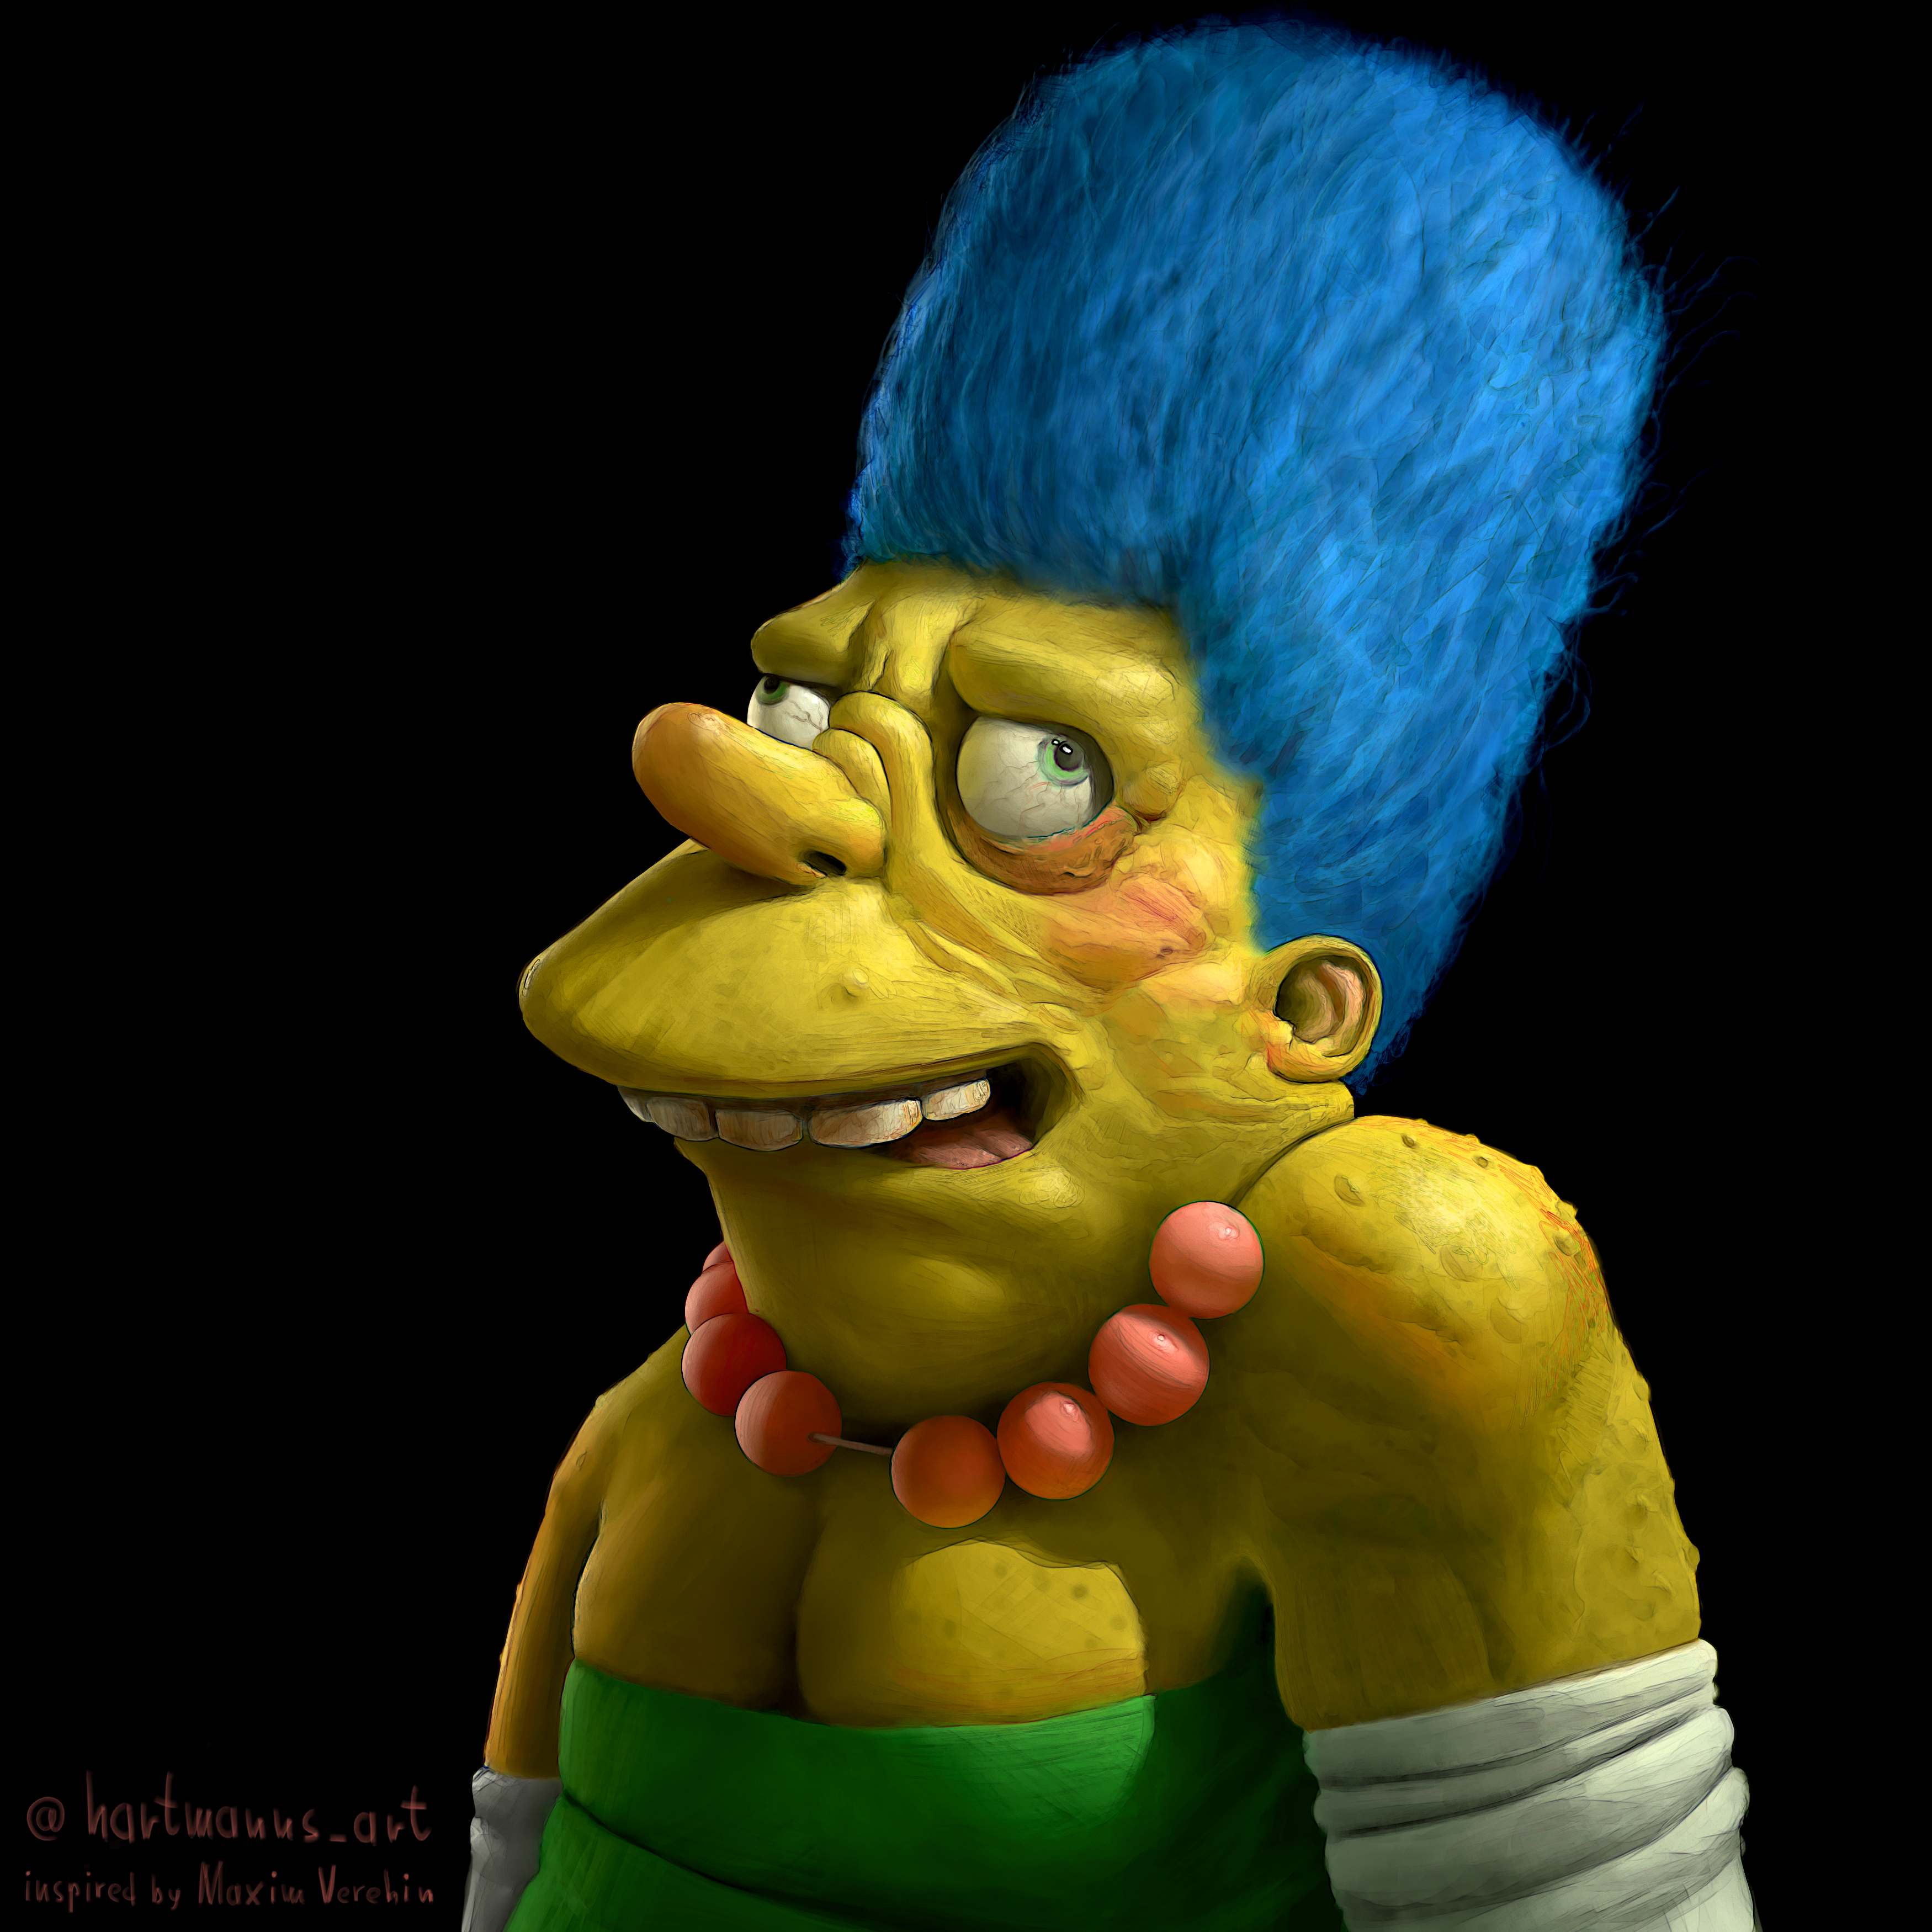 Barney Gumble as Marge